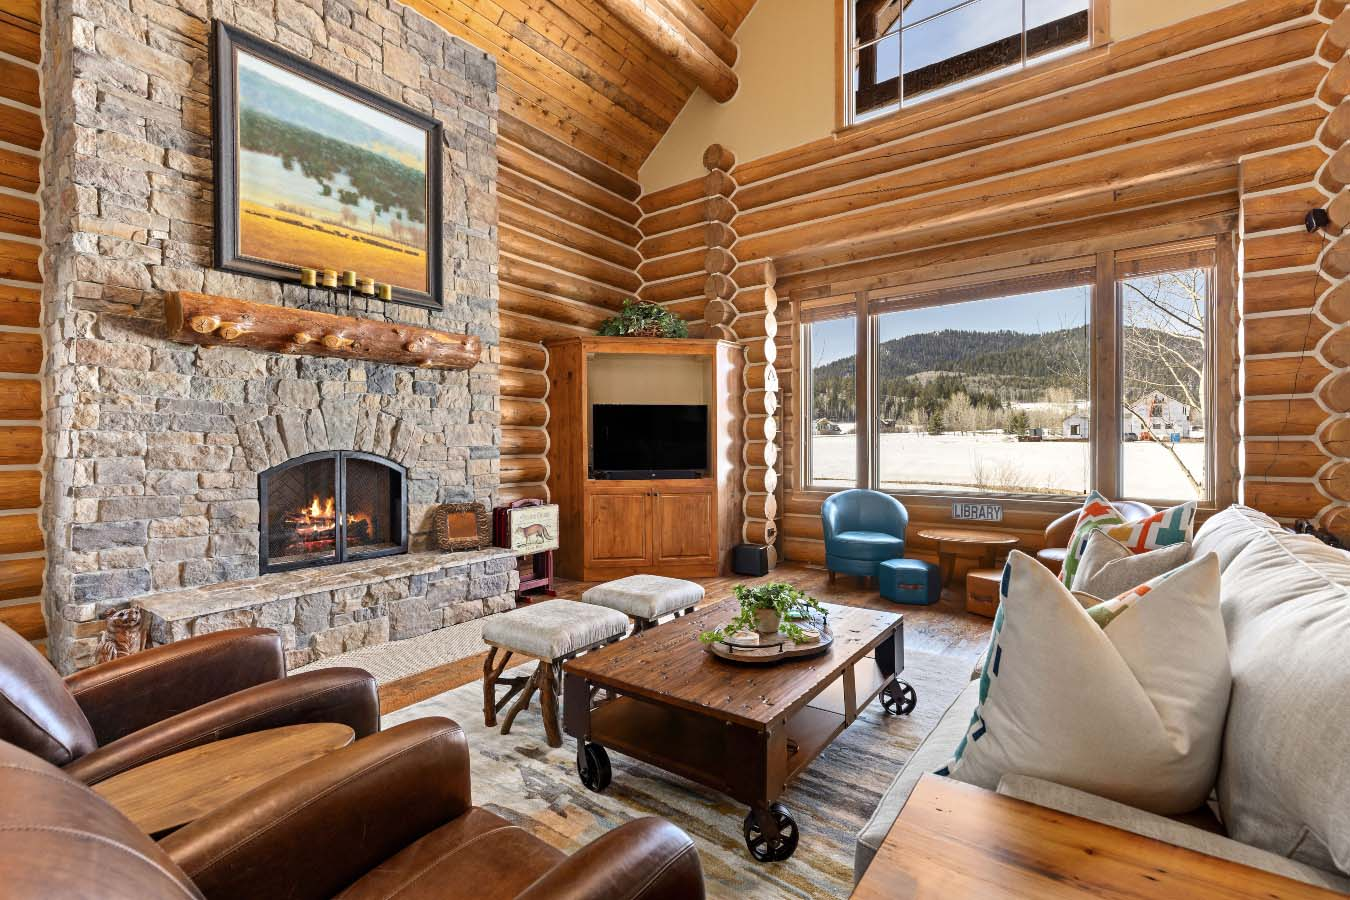 Restful Adventure Cabin for Rent - Victor, Idaho